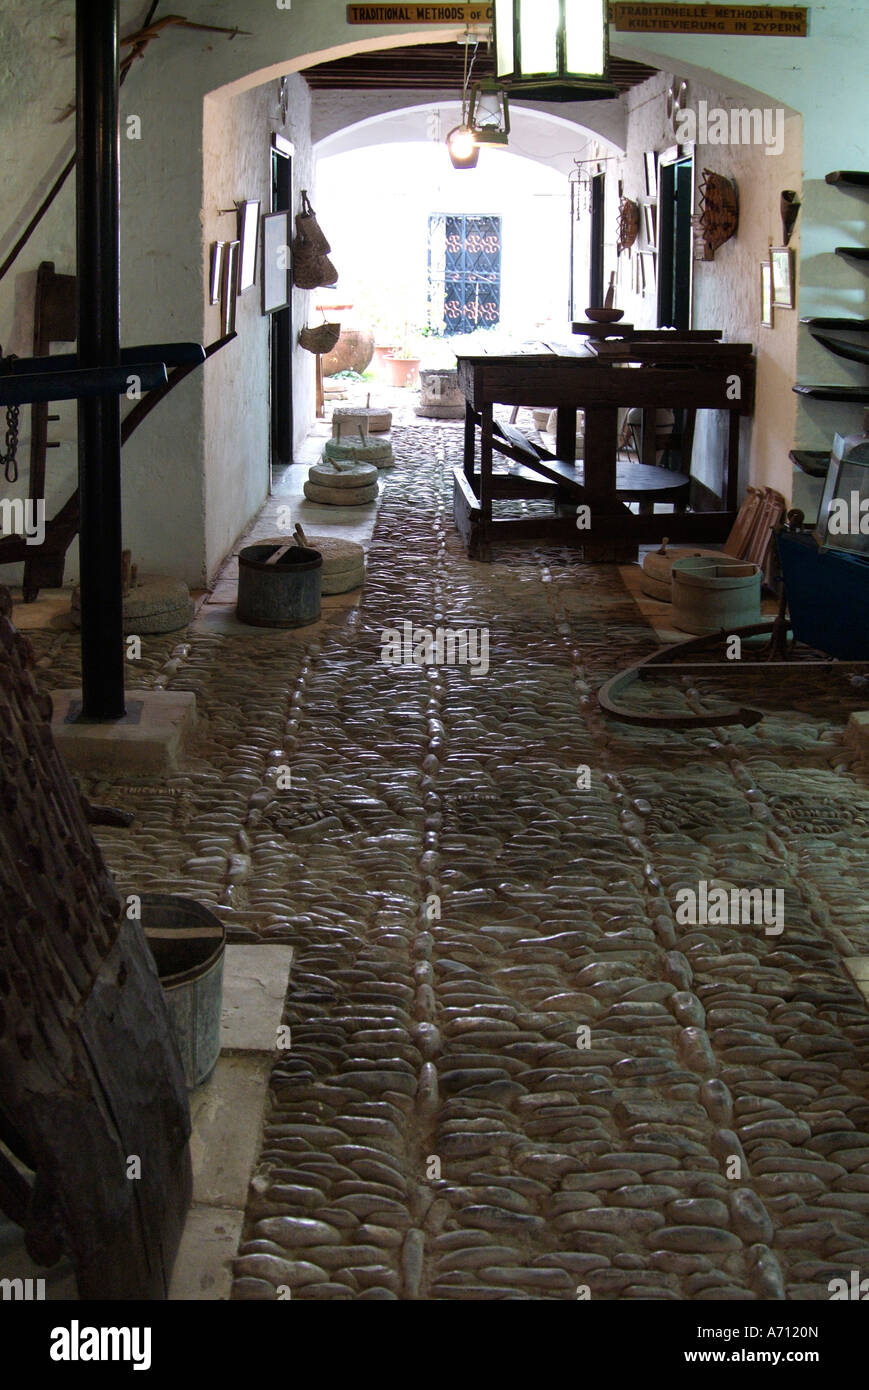 Ethnological museum pafos paphos house interior old time olden antique history historic collection local everyday - Stock Image